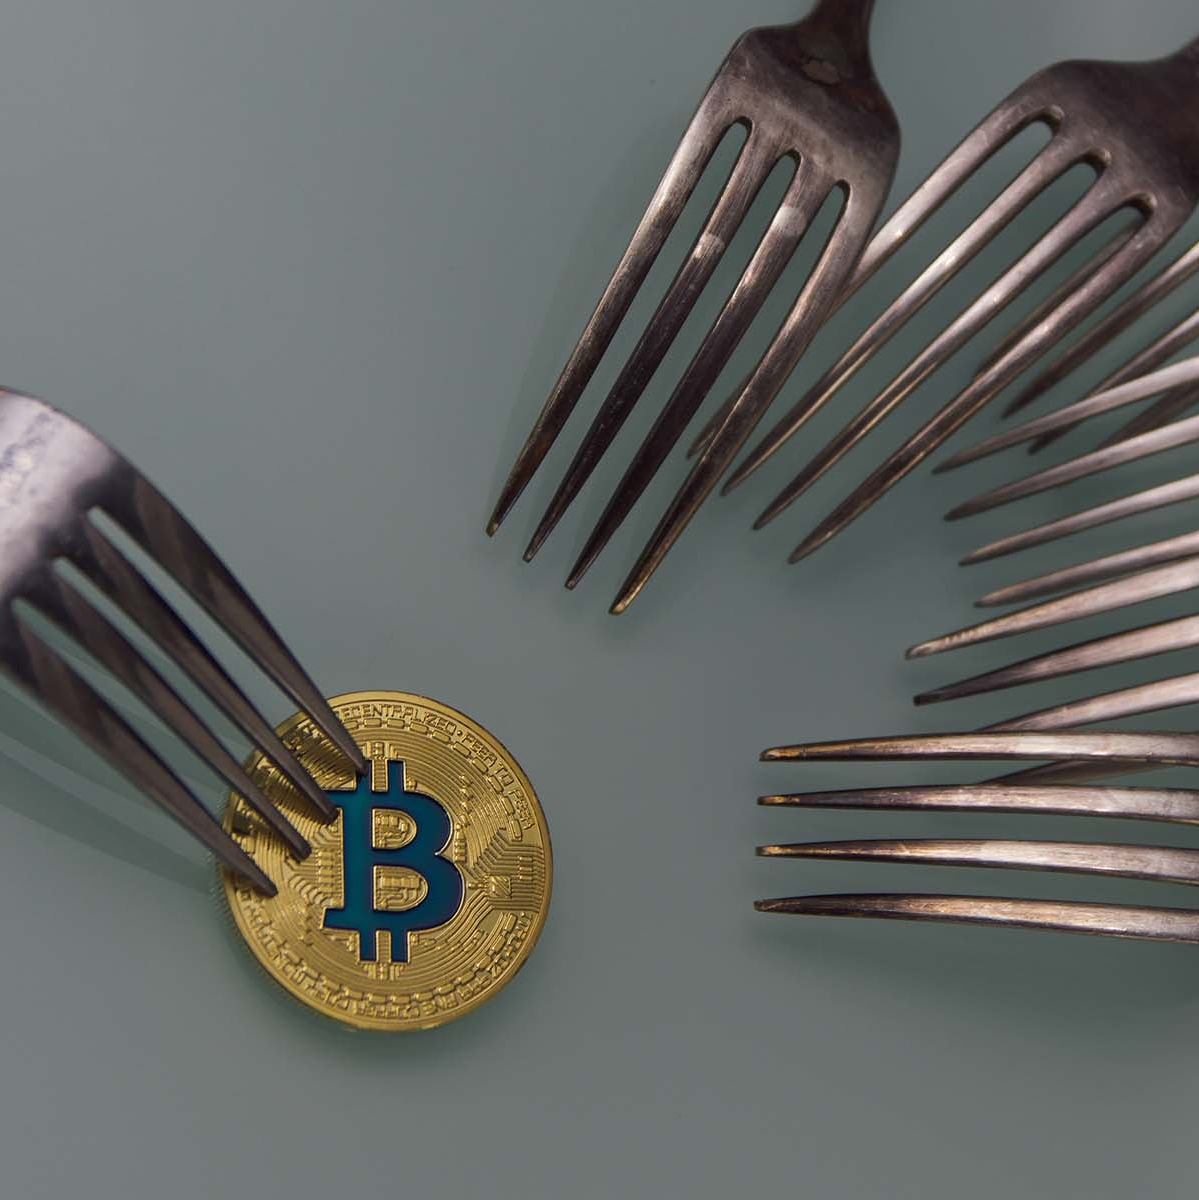 What are bitcoin forks and how do they work?